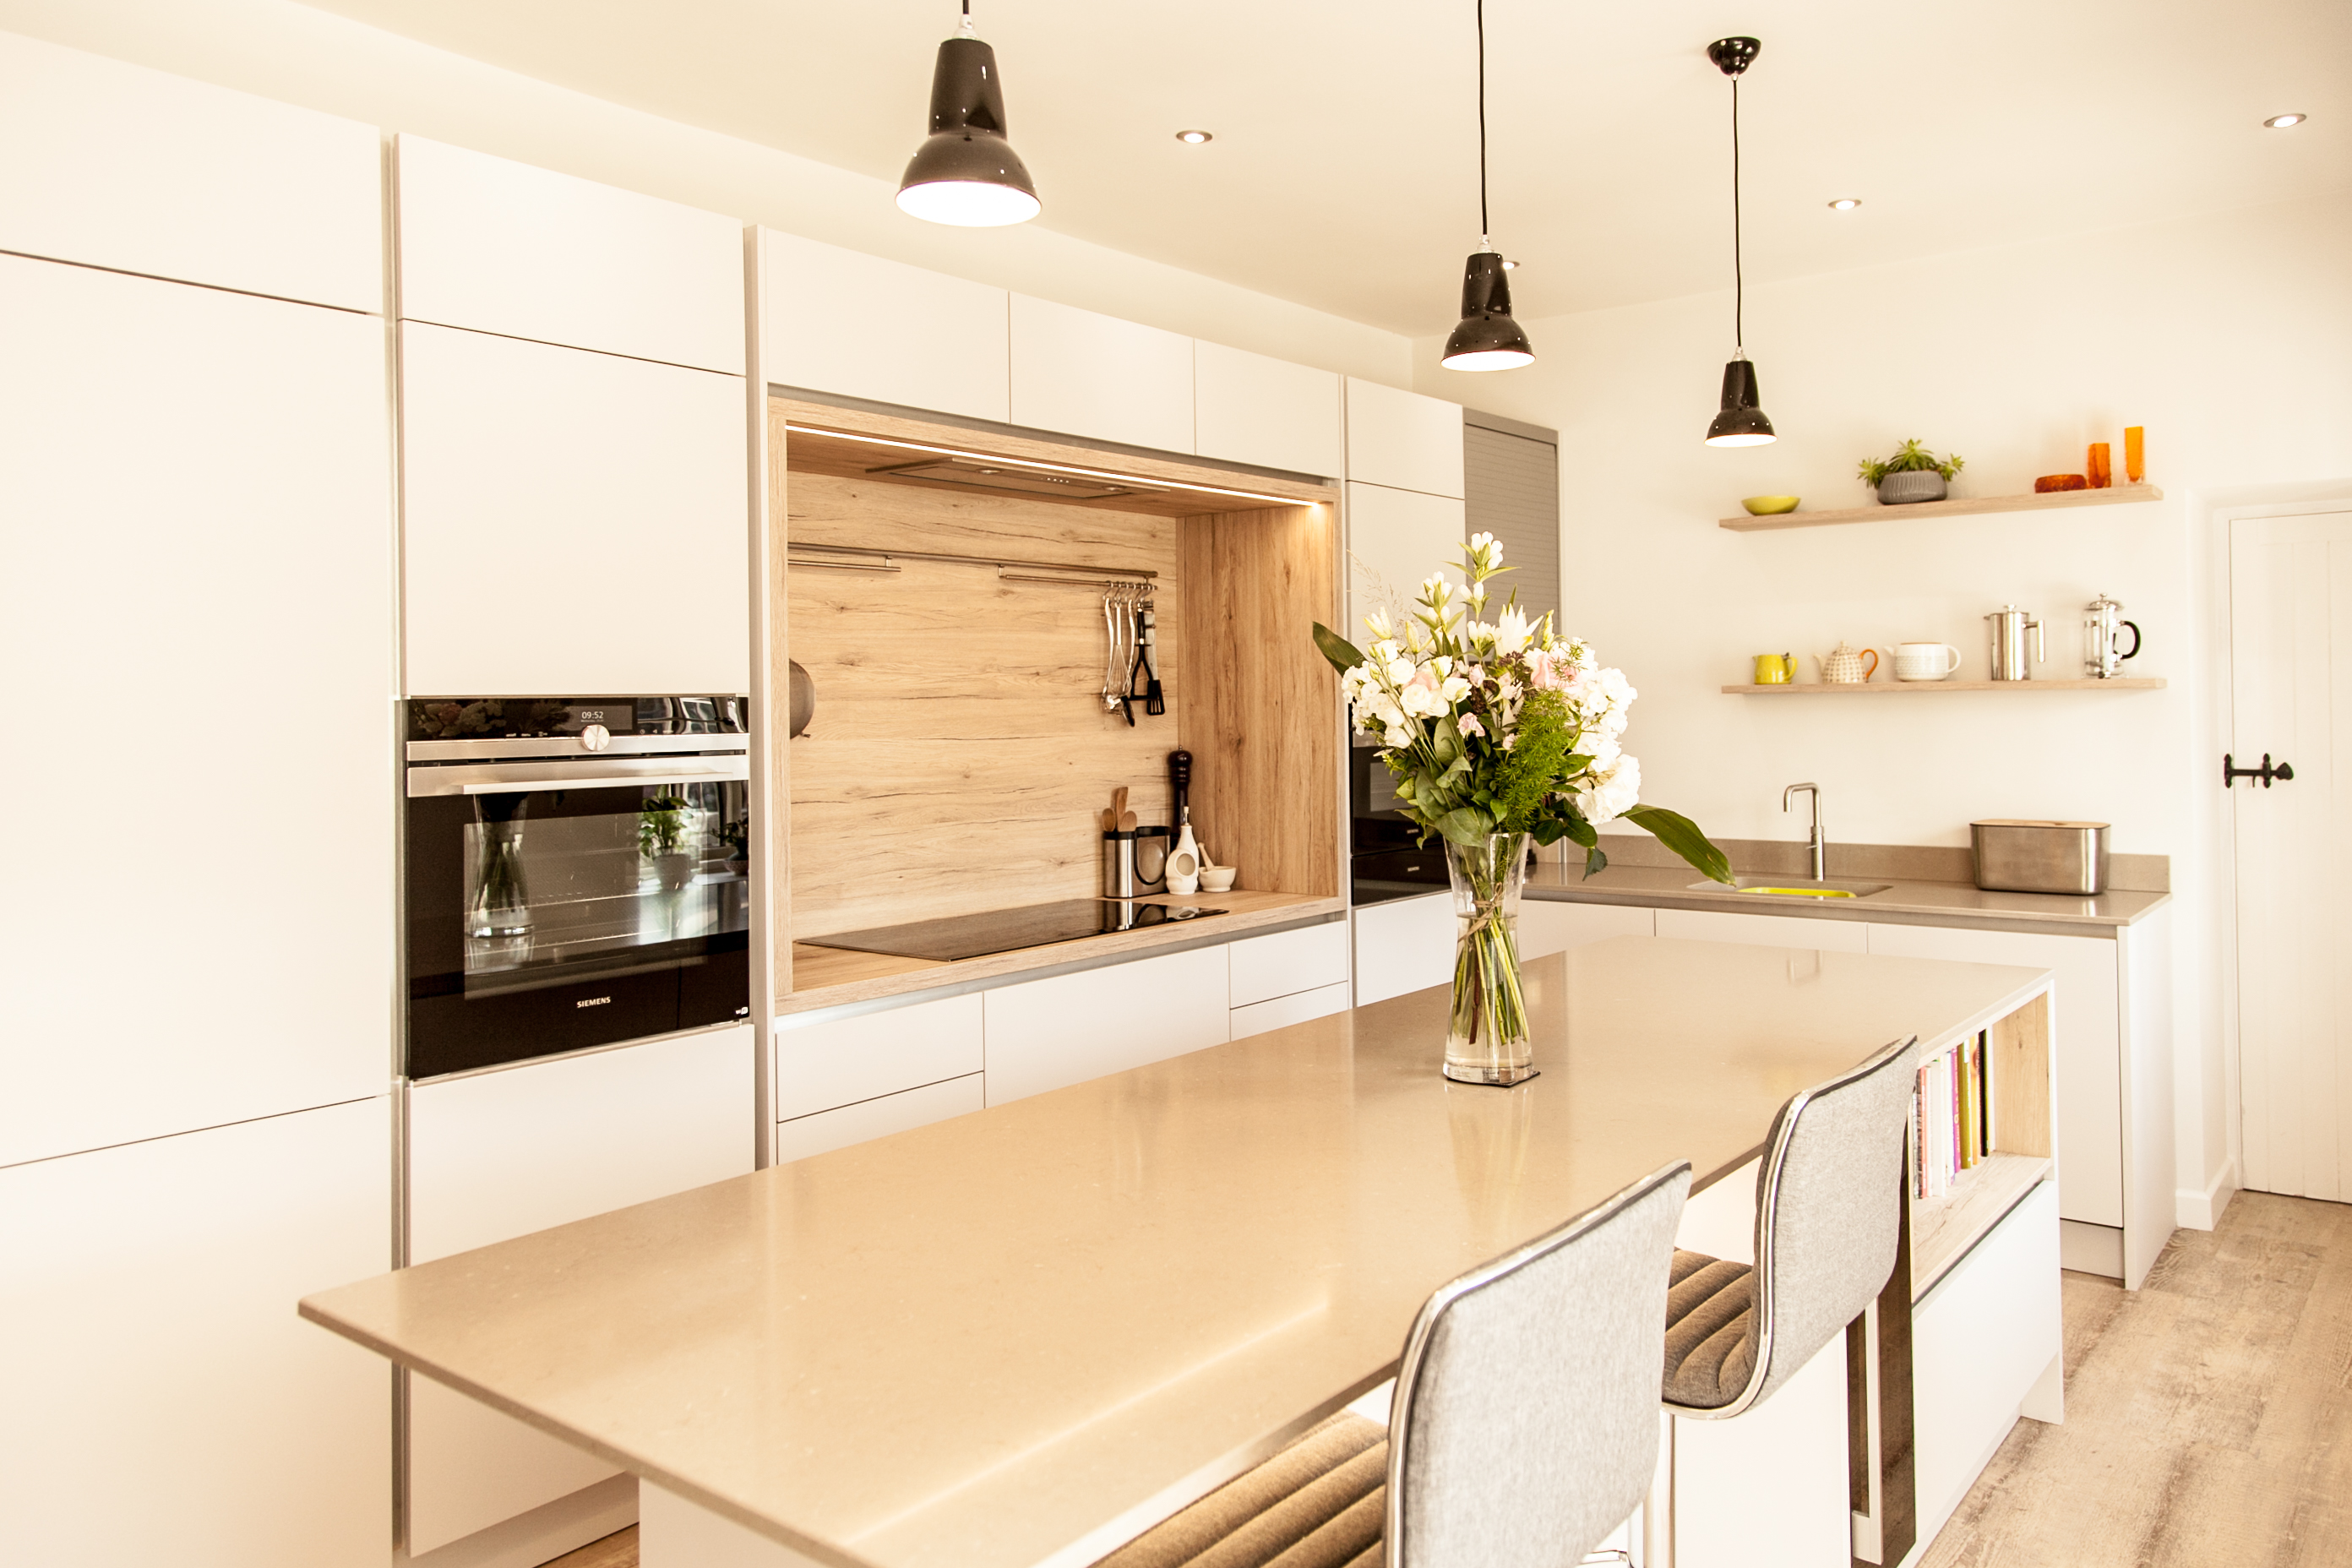 Charlton Kings Kitchen Project, Voga Interiors - Kitchens Cirencester